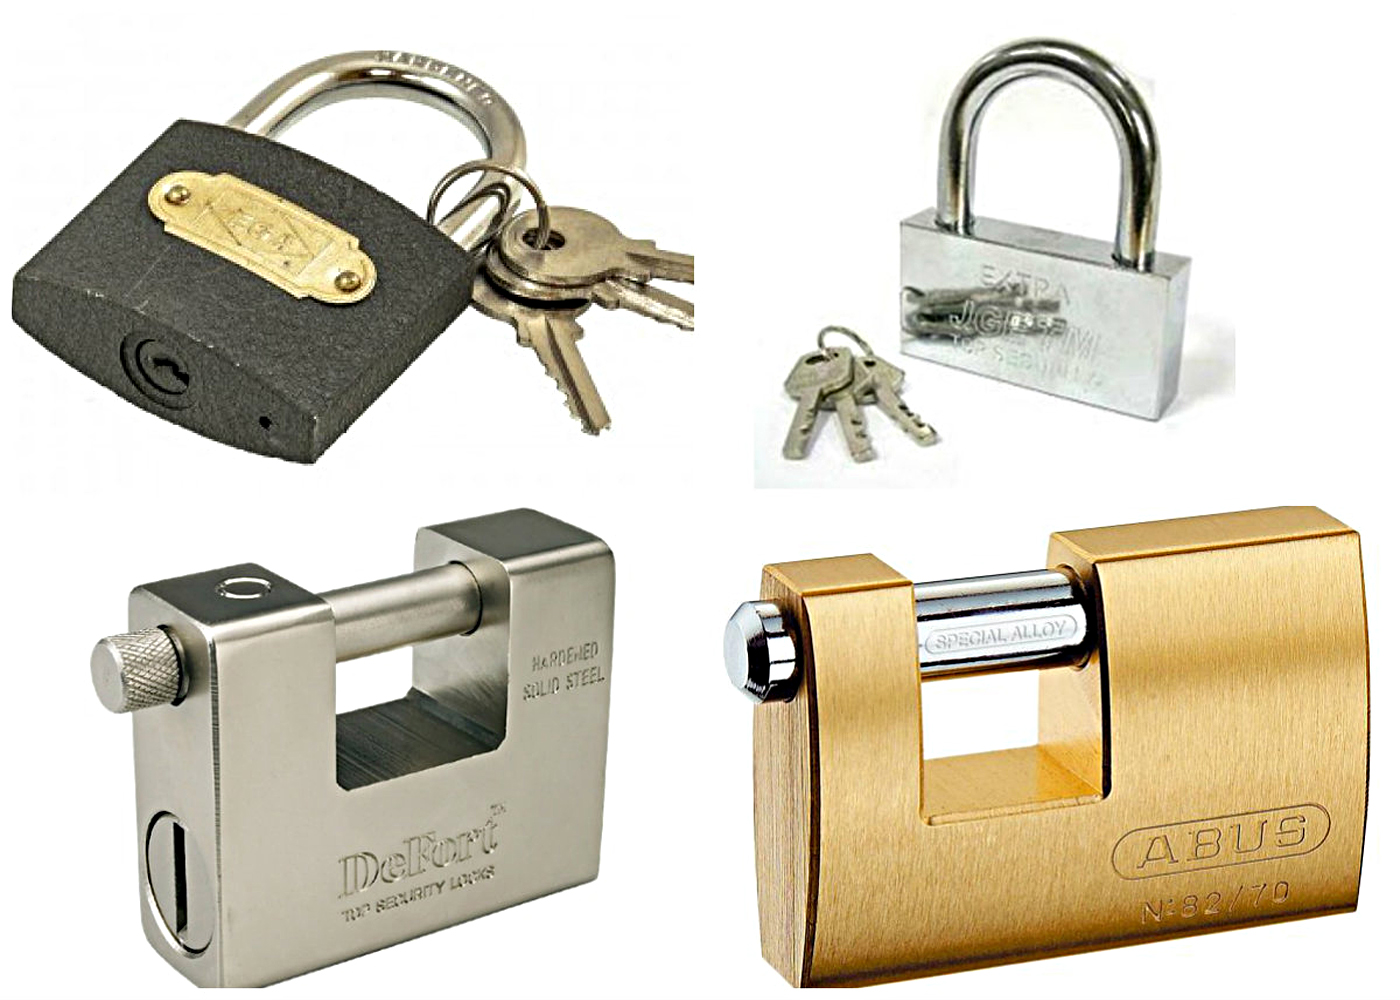 The padlocks material – aluminum, steel, iron and brass